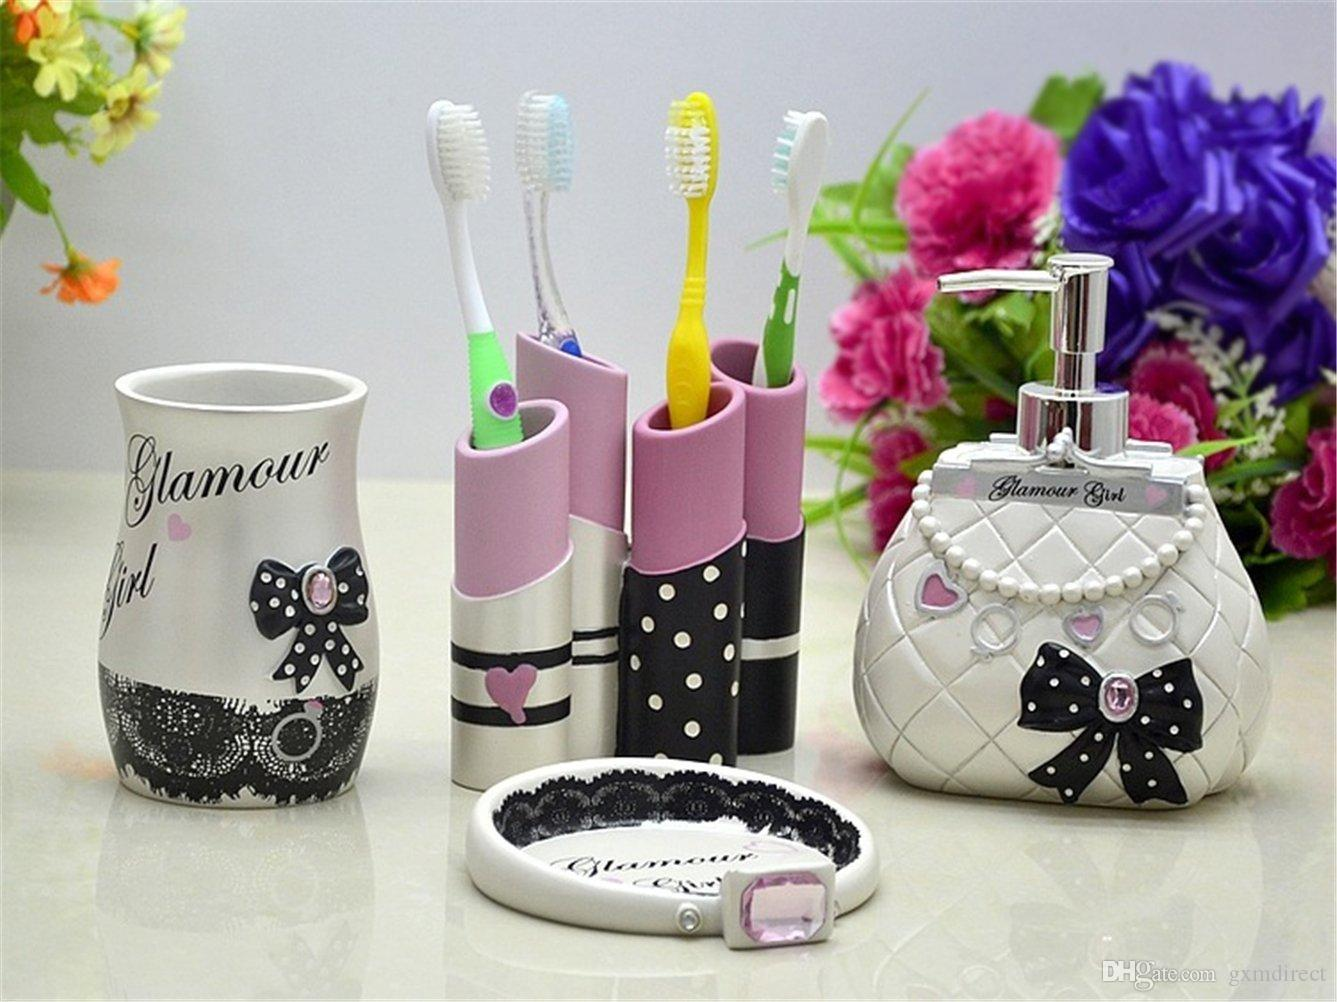 2018 Glamour Girl Bathroom Accessory Set Complete, Ivory Girly Bathroom  Decor For Bathroom, Powder Room, Kitchen From Gxmdirect, $50.25 | Dhgate.Com